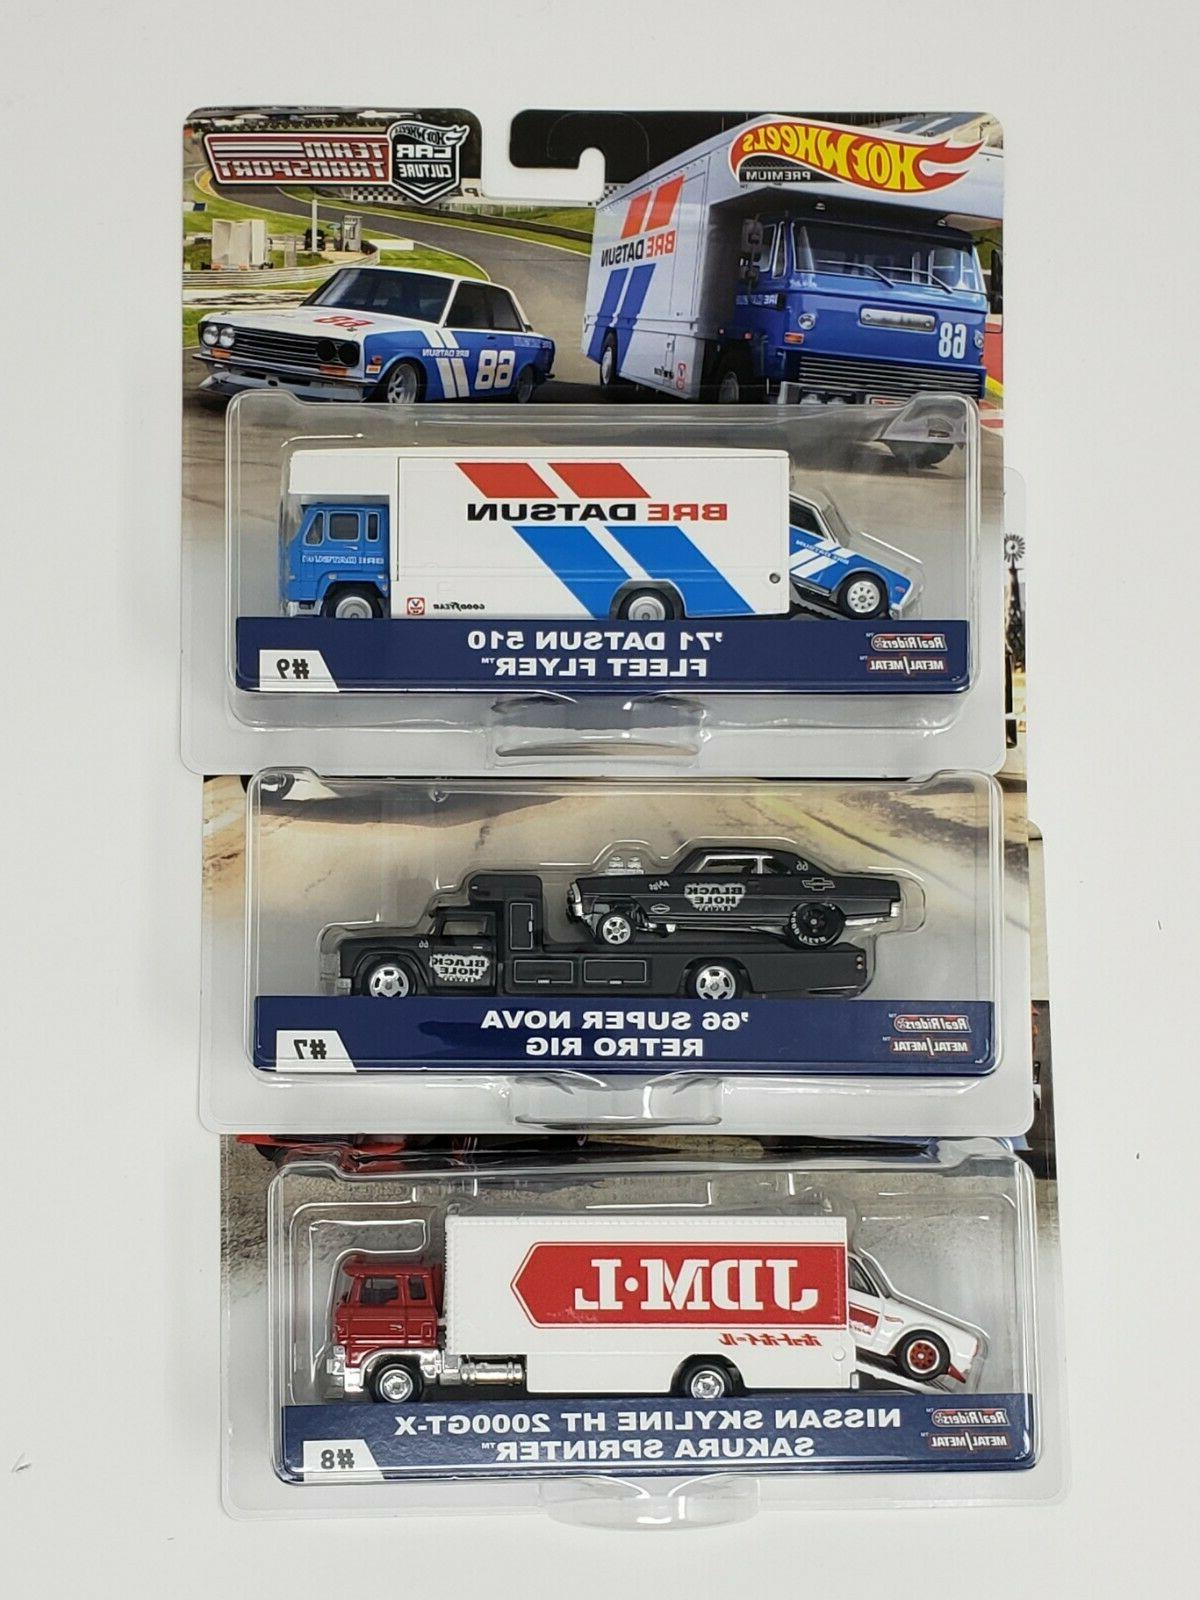 2019 team transport case c datsun 510